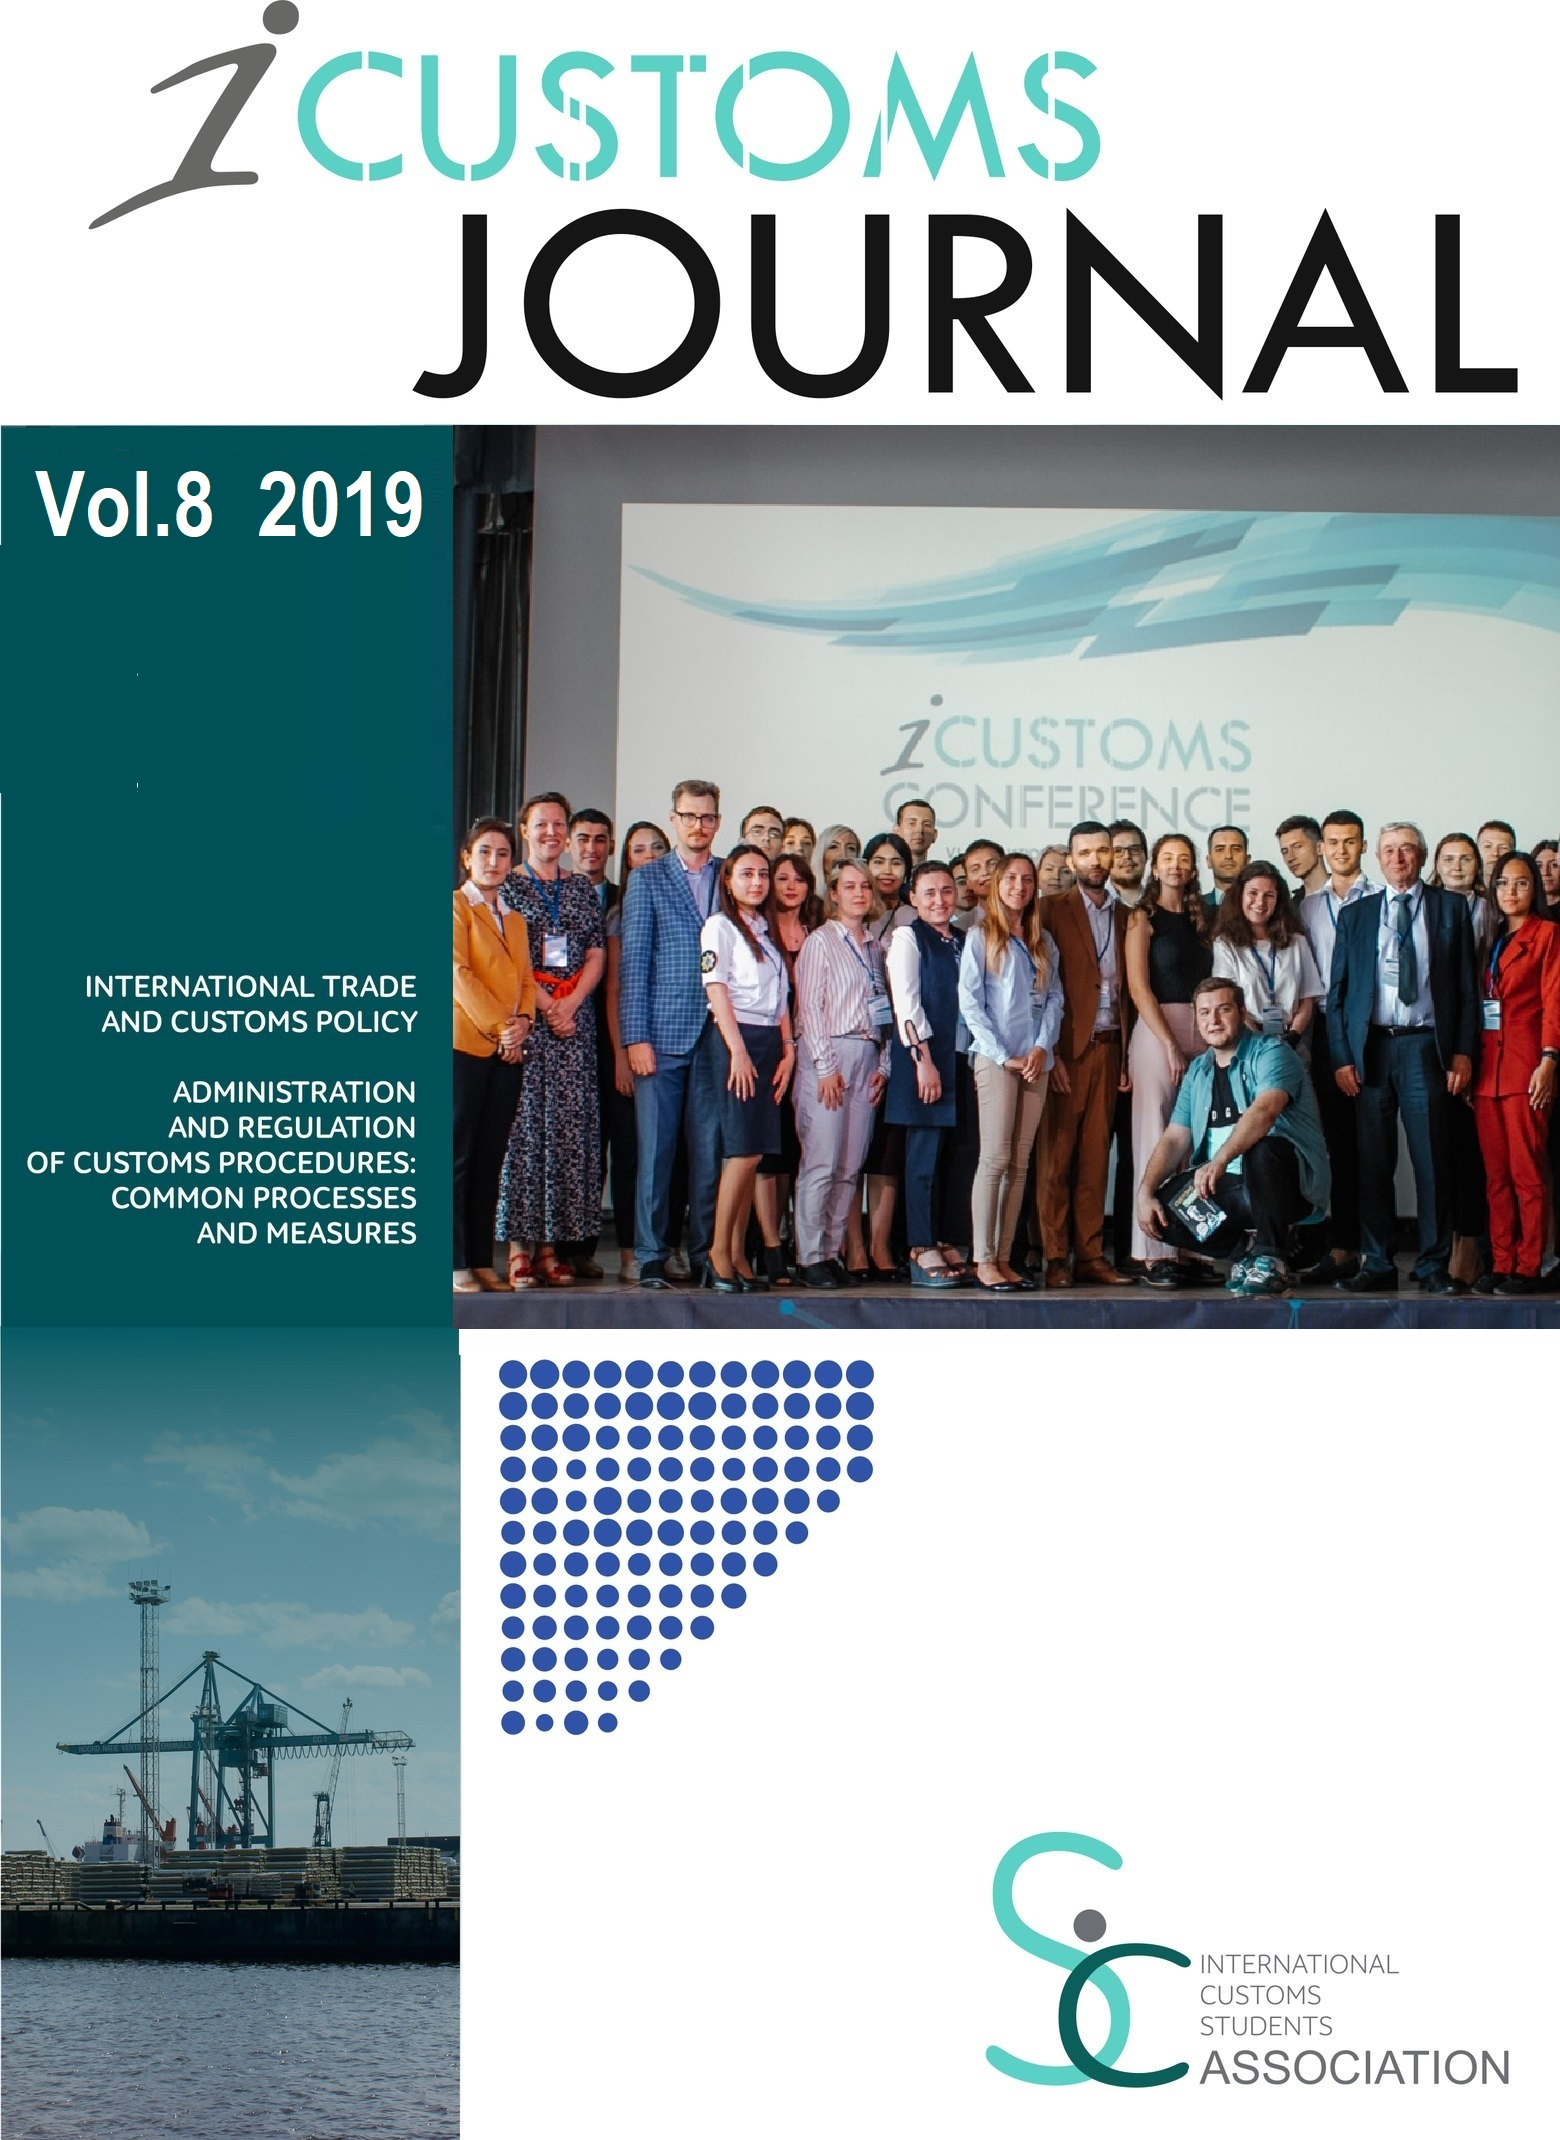 New electronic issue of the i-Customs Journal